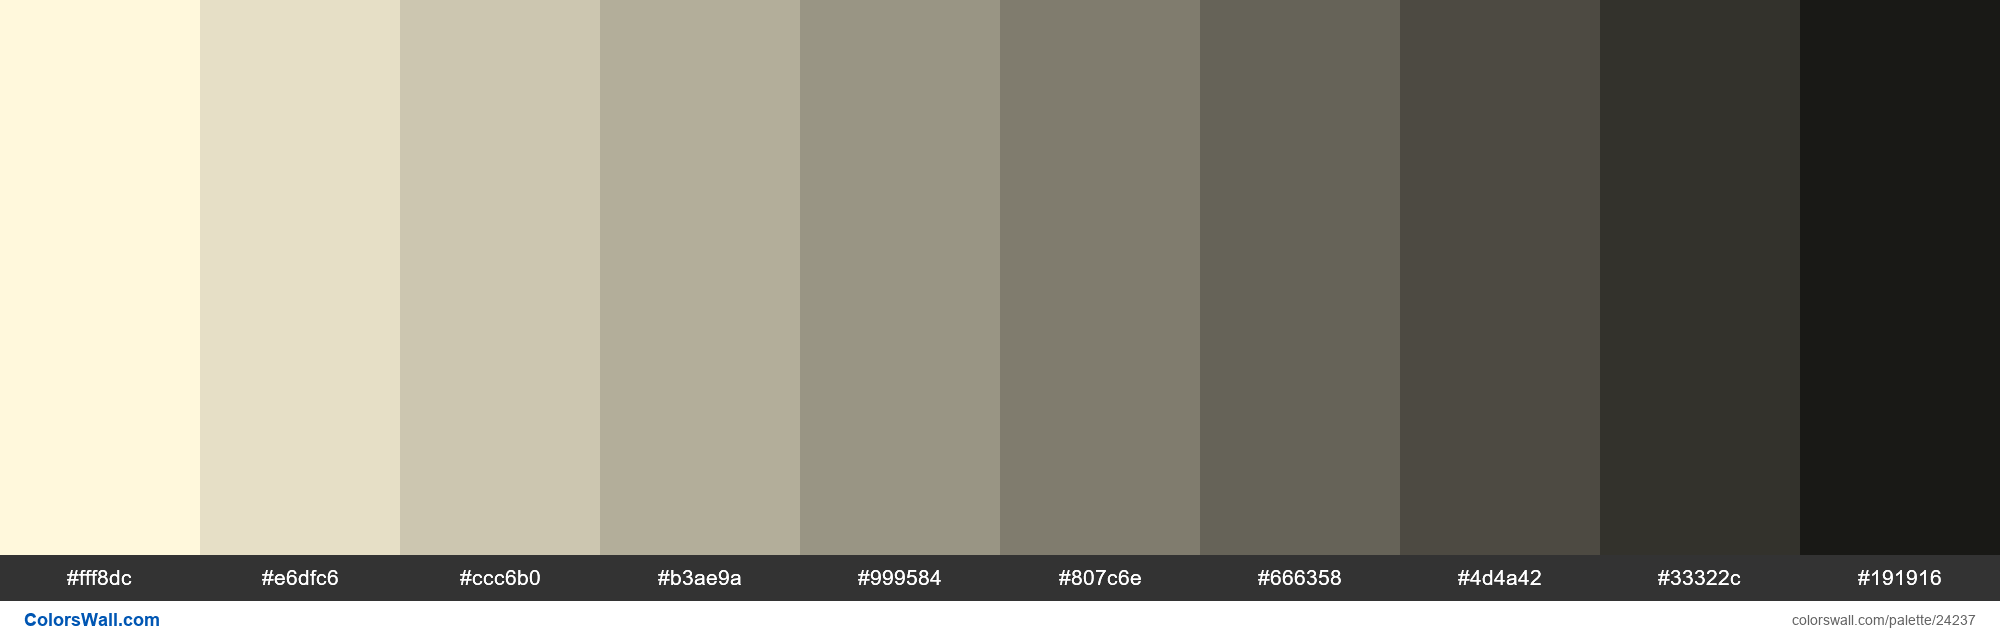 Shades of Cornsilk #FFF8DC hex color - #24237